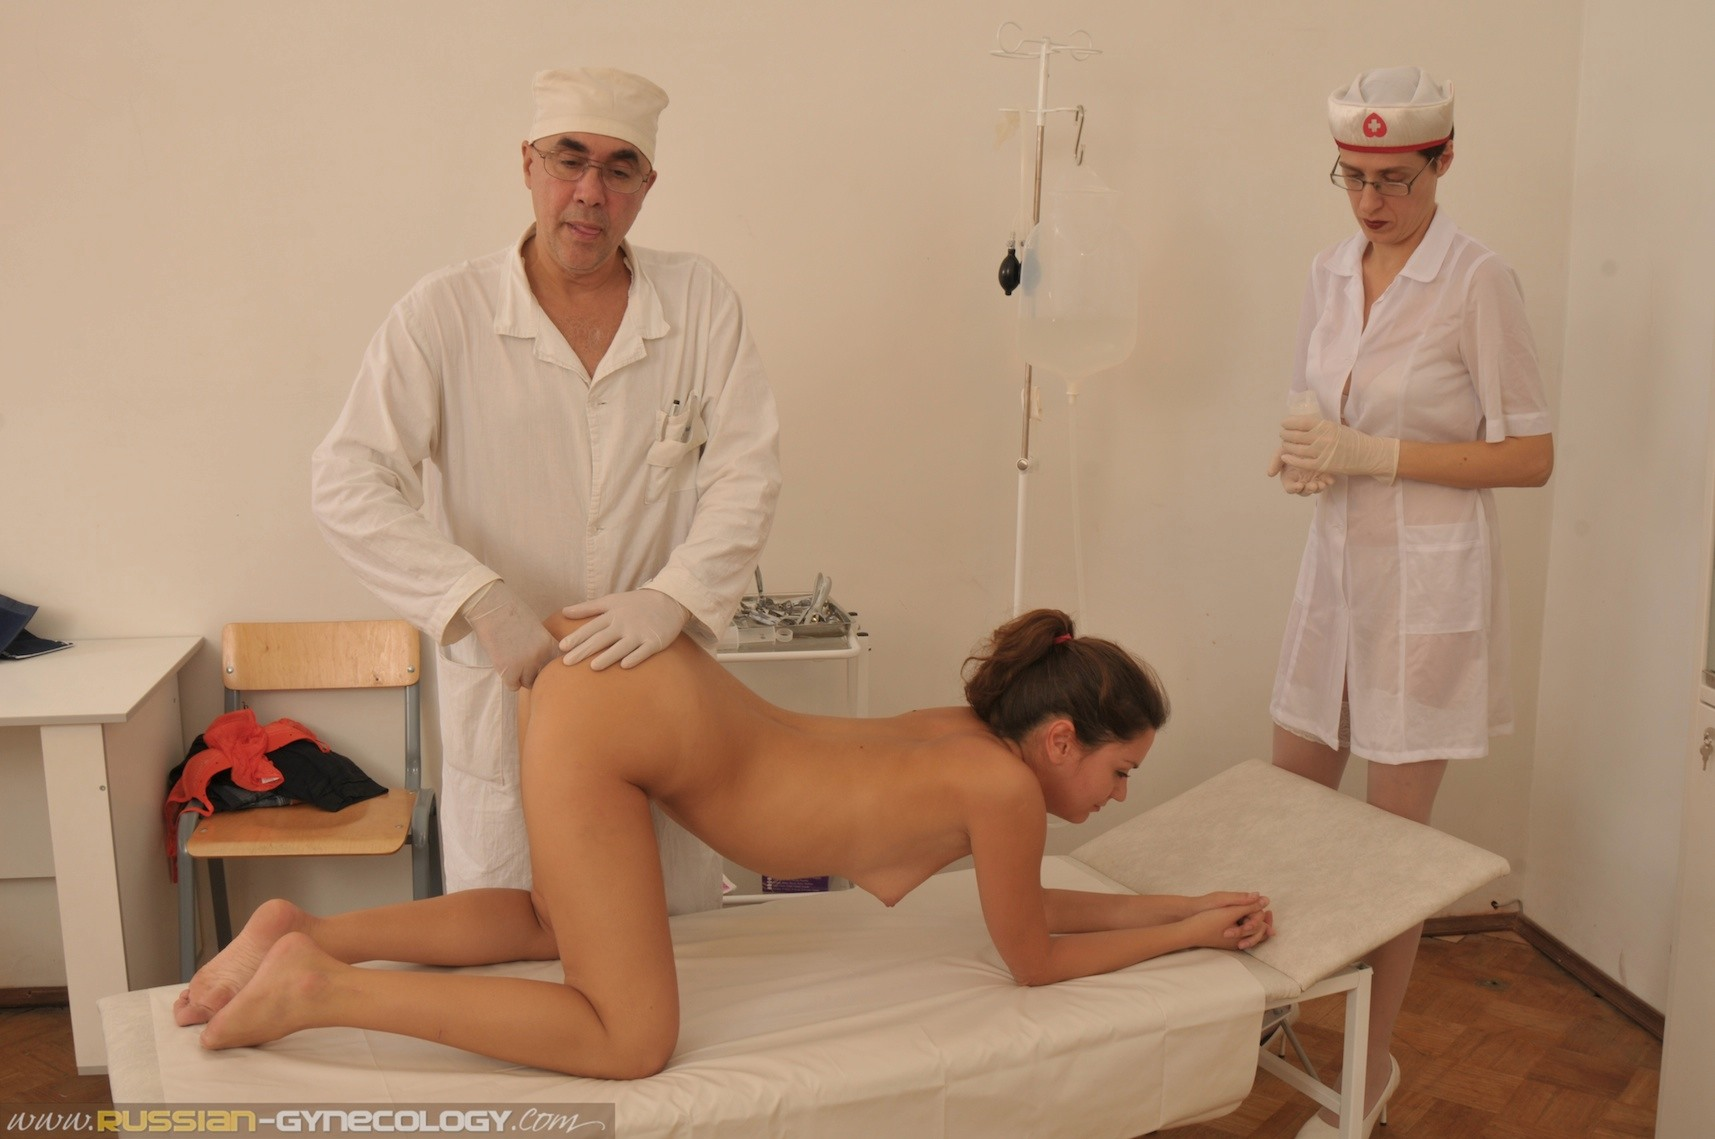 russian gynecology site hg galleries 005 photo12